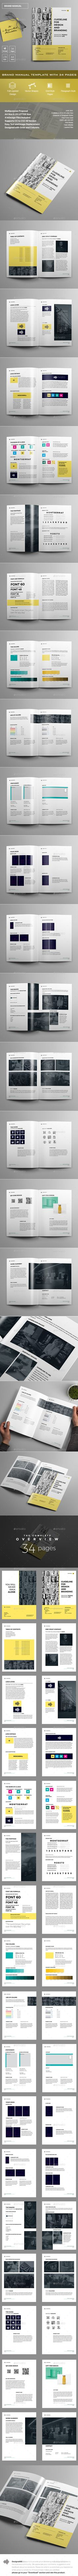 Exclusive Brand Manual — InDesign INDD #infographics #minimal • Download ➝ https://graphicriver.net/item/exclusive-brand-manual/19909855?ref=pxcr